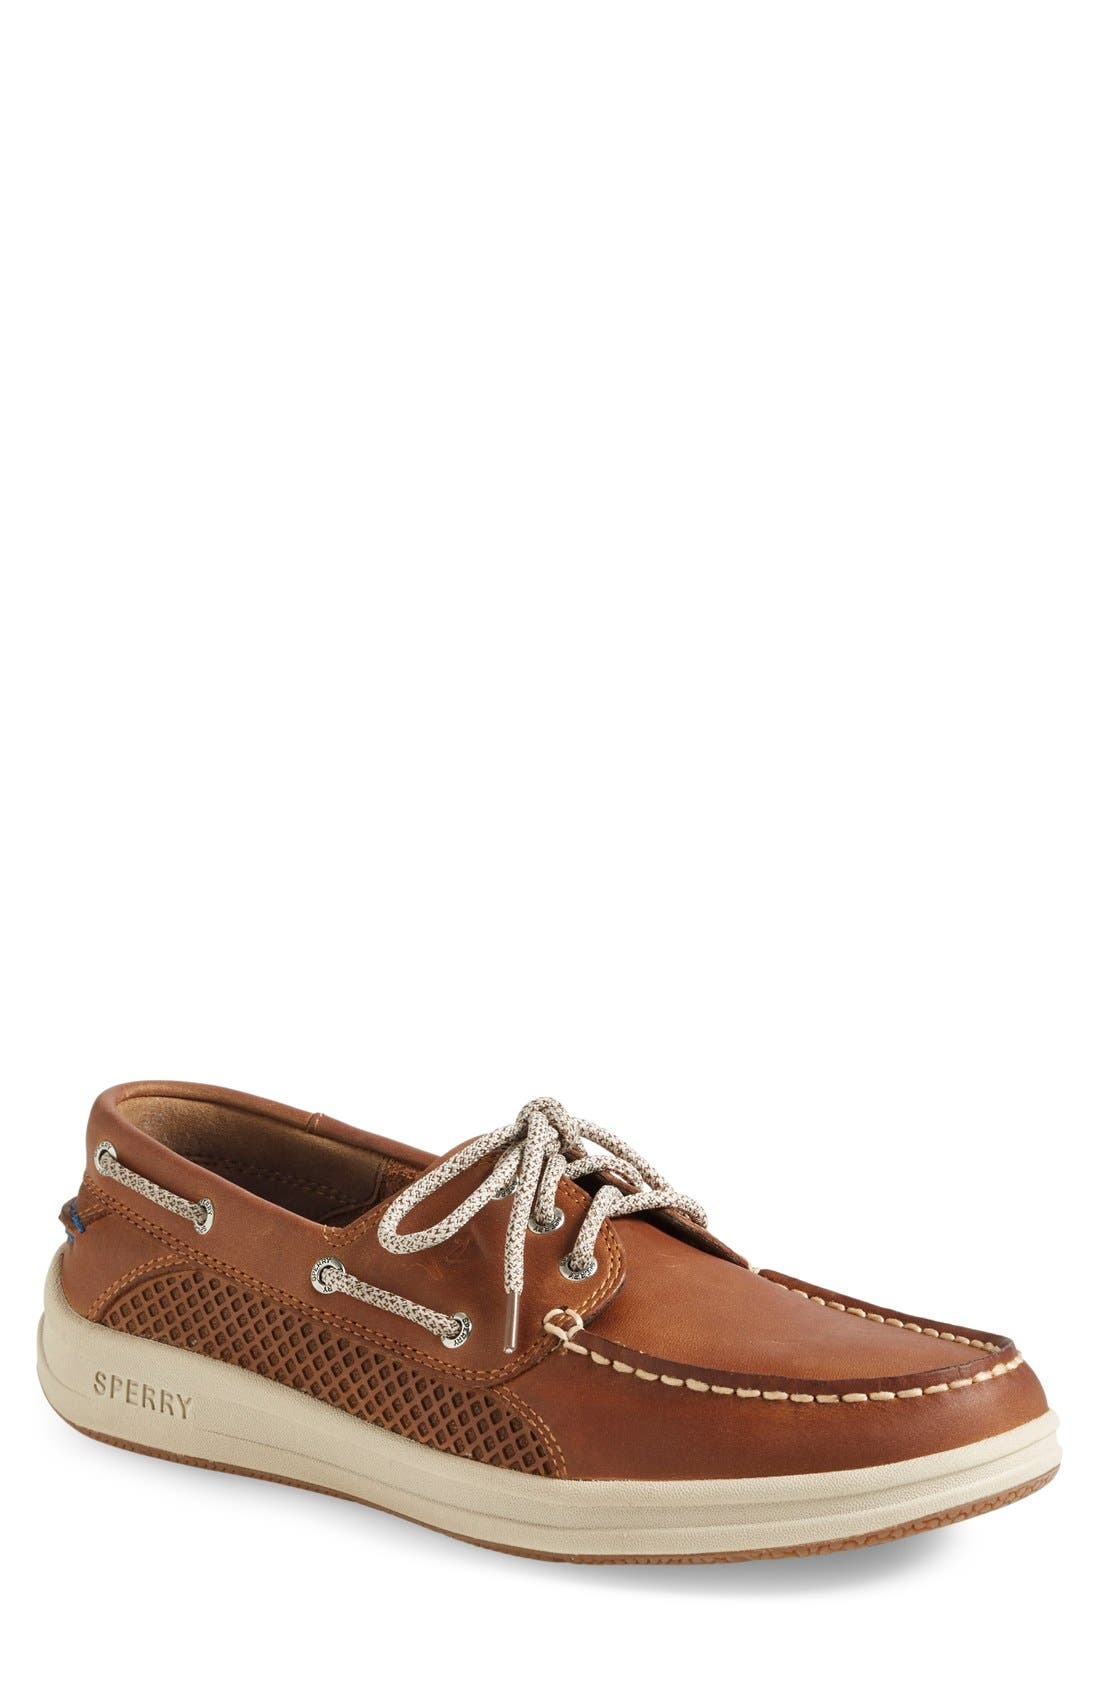 SPERRY 'Gamefish' Boat Shoe